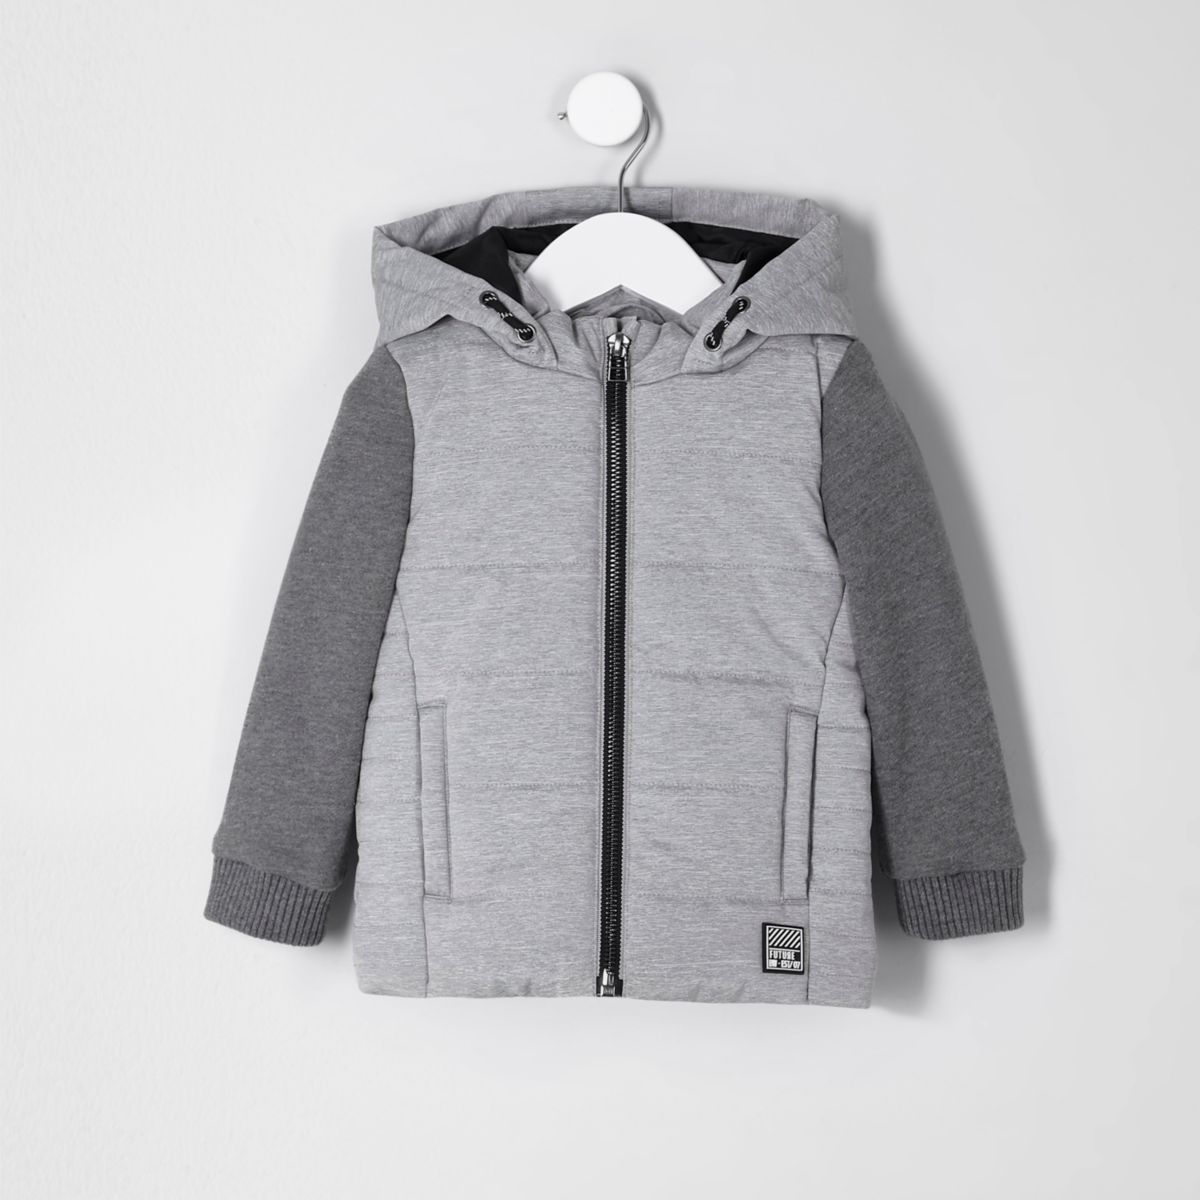 Mini boys grey jersey sleeve vest jacket